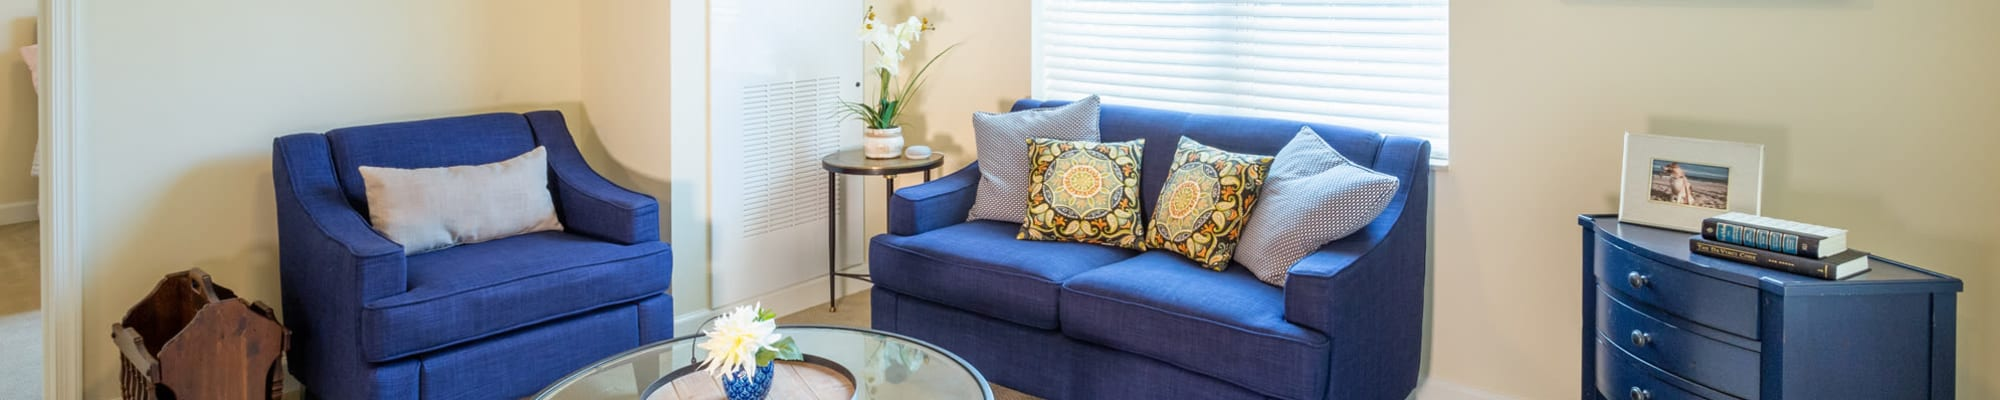 Gallery of The Harmony Collection at Roanoke - Assisted Living in Roanoke, Virginia